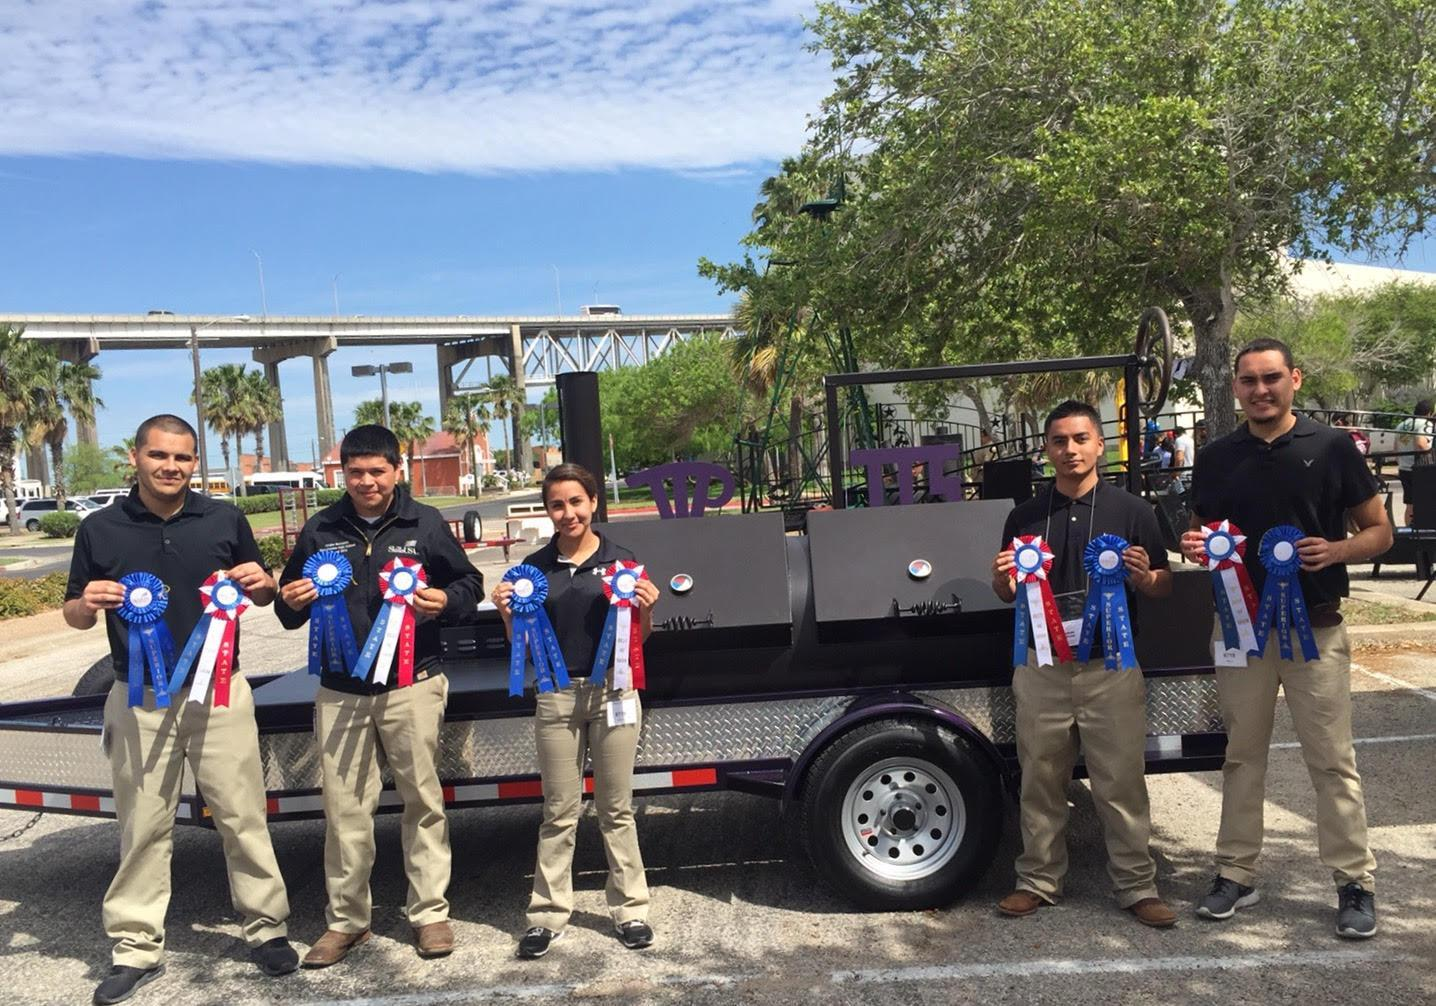 group of welding student in front of project they made holding blue ribbons